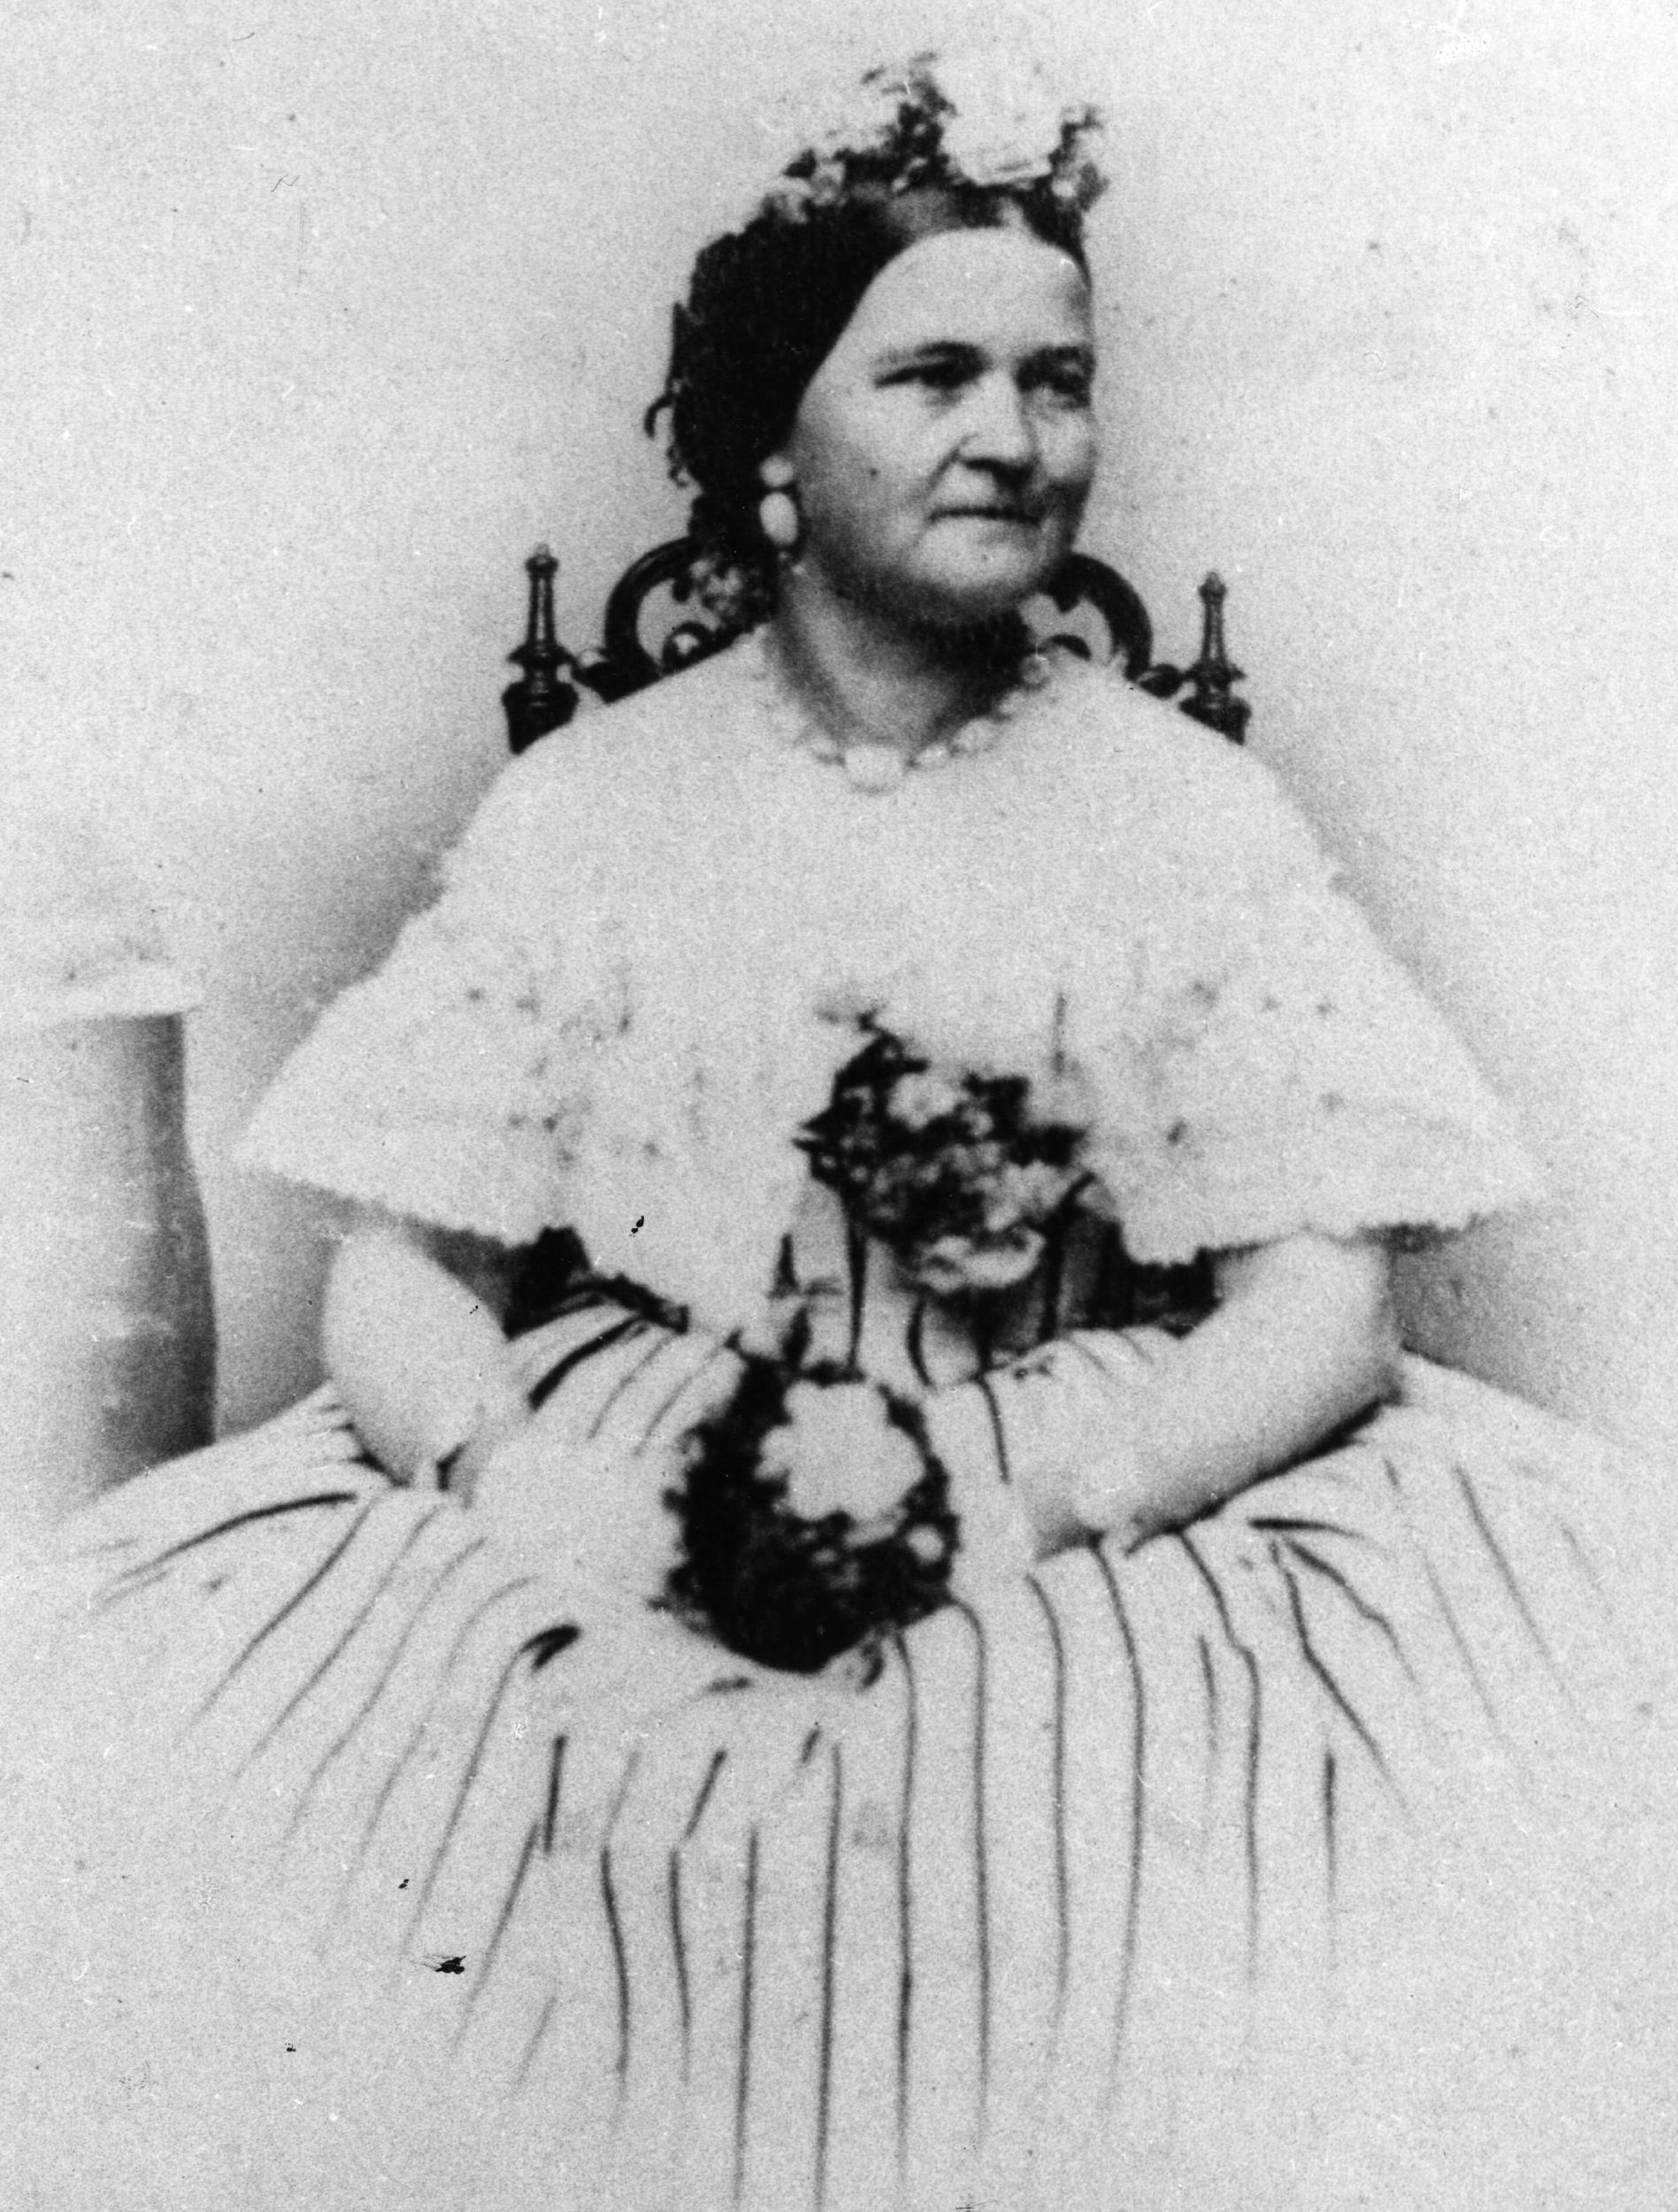 an introduction to the life of mary ann todd lincoln the wife of the 16th president of the united st Mary todd lincoln, wife of abraham lincoln mary ann todd lincoln ( december 13, 1818 - july 16, 1882) was the wife of the 16th president of the united states.